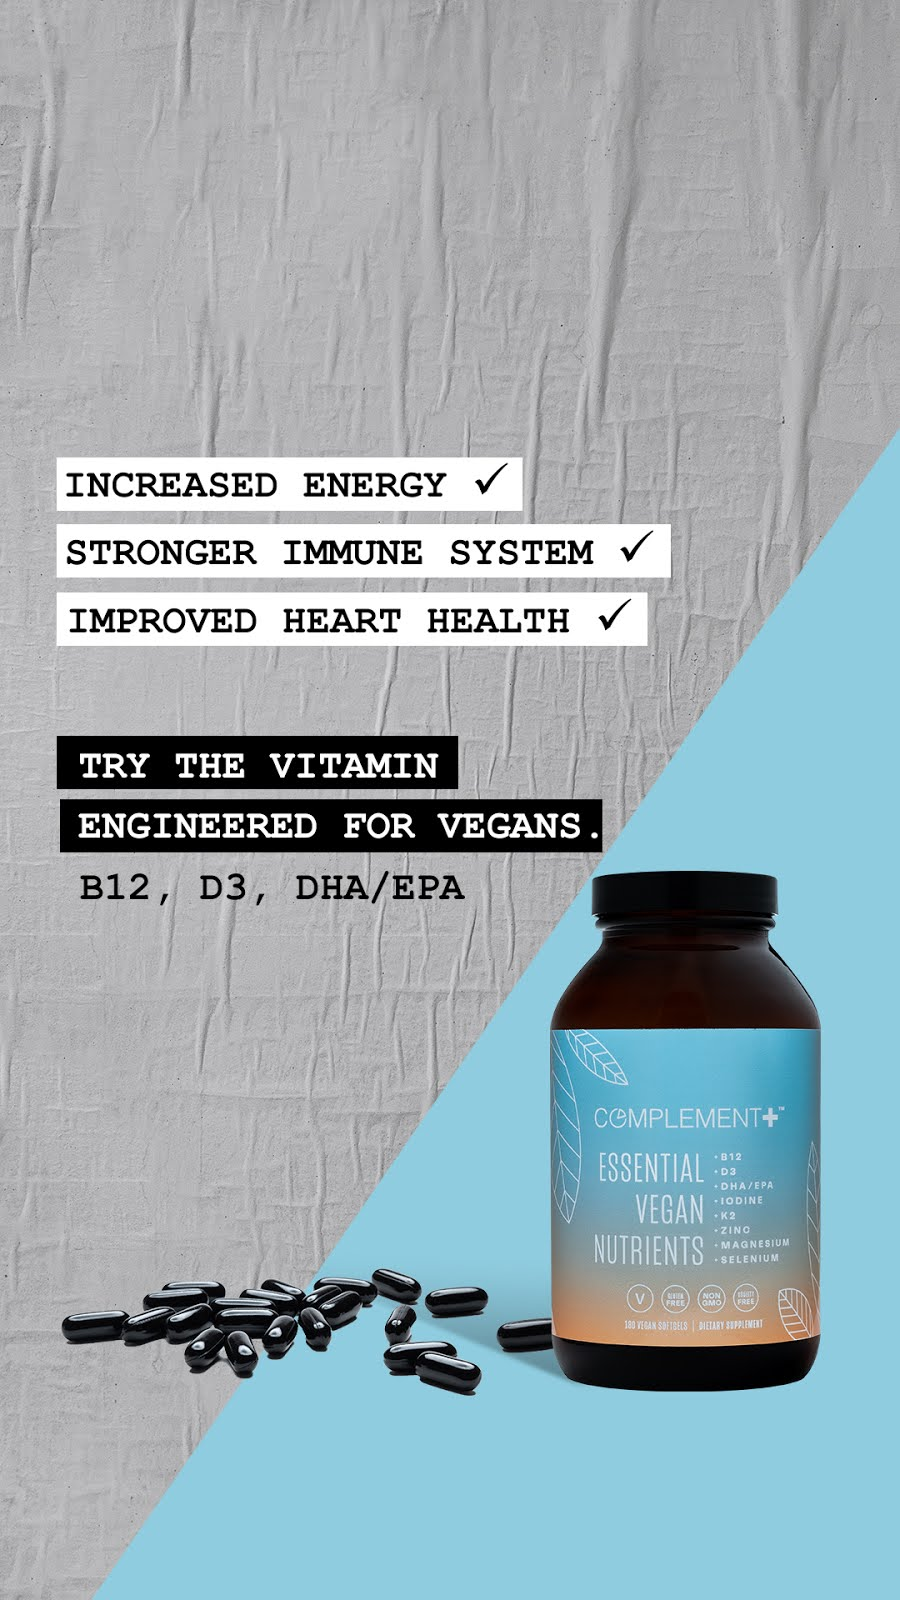 My fave vegan supplement! Click the image to learn more about Complement!